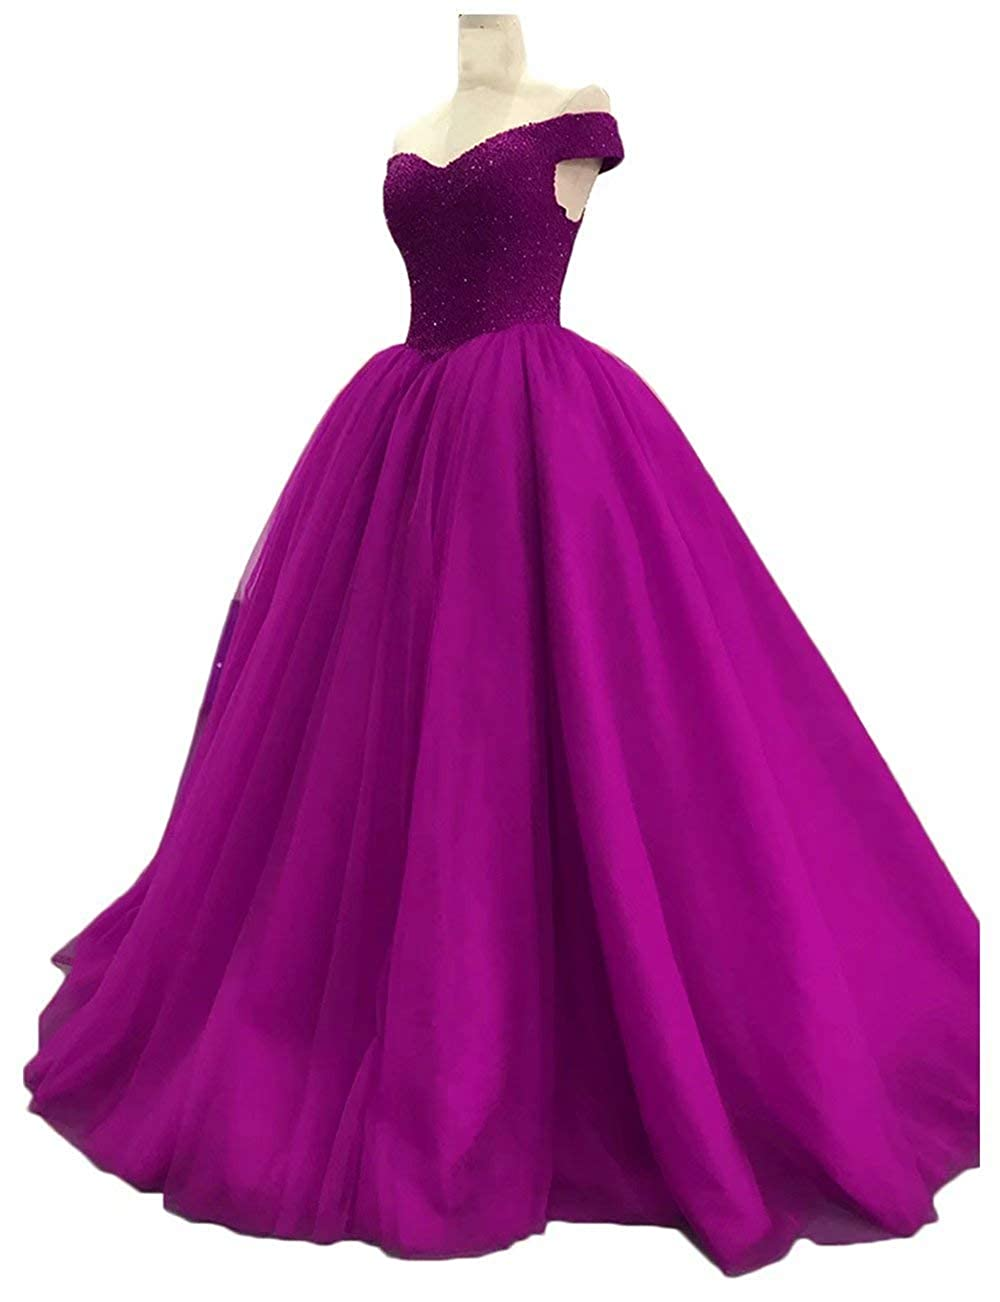 Fuchsia Womens Off The Shoulder Prom Dresses Long 2019 Beaded Tulle A Line Evening Formal Gowns Wedding Party Dresses